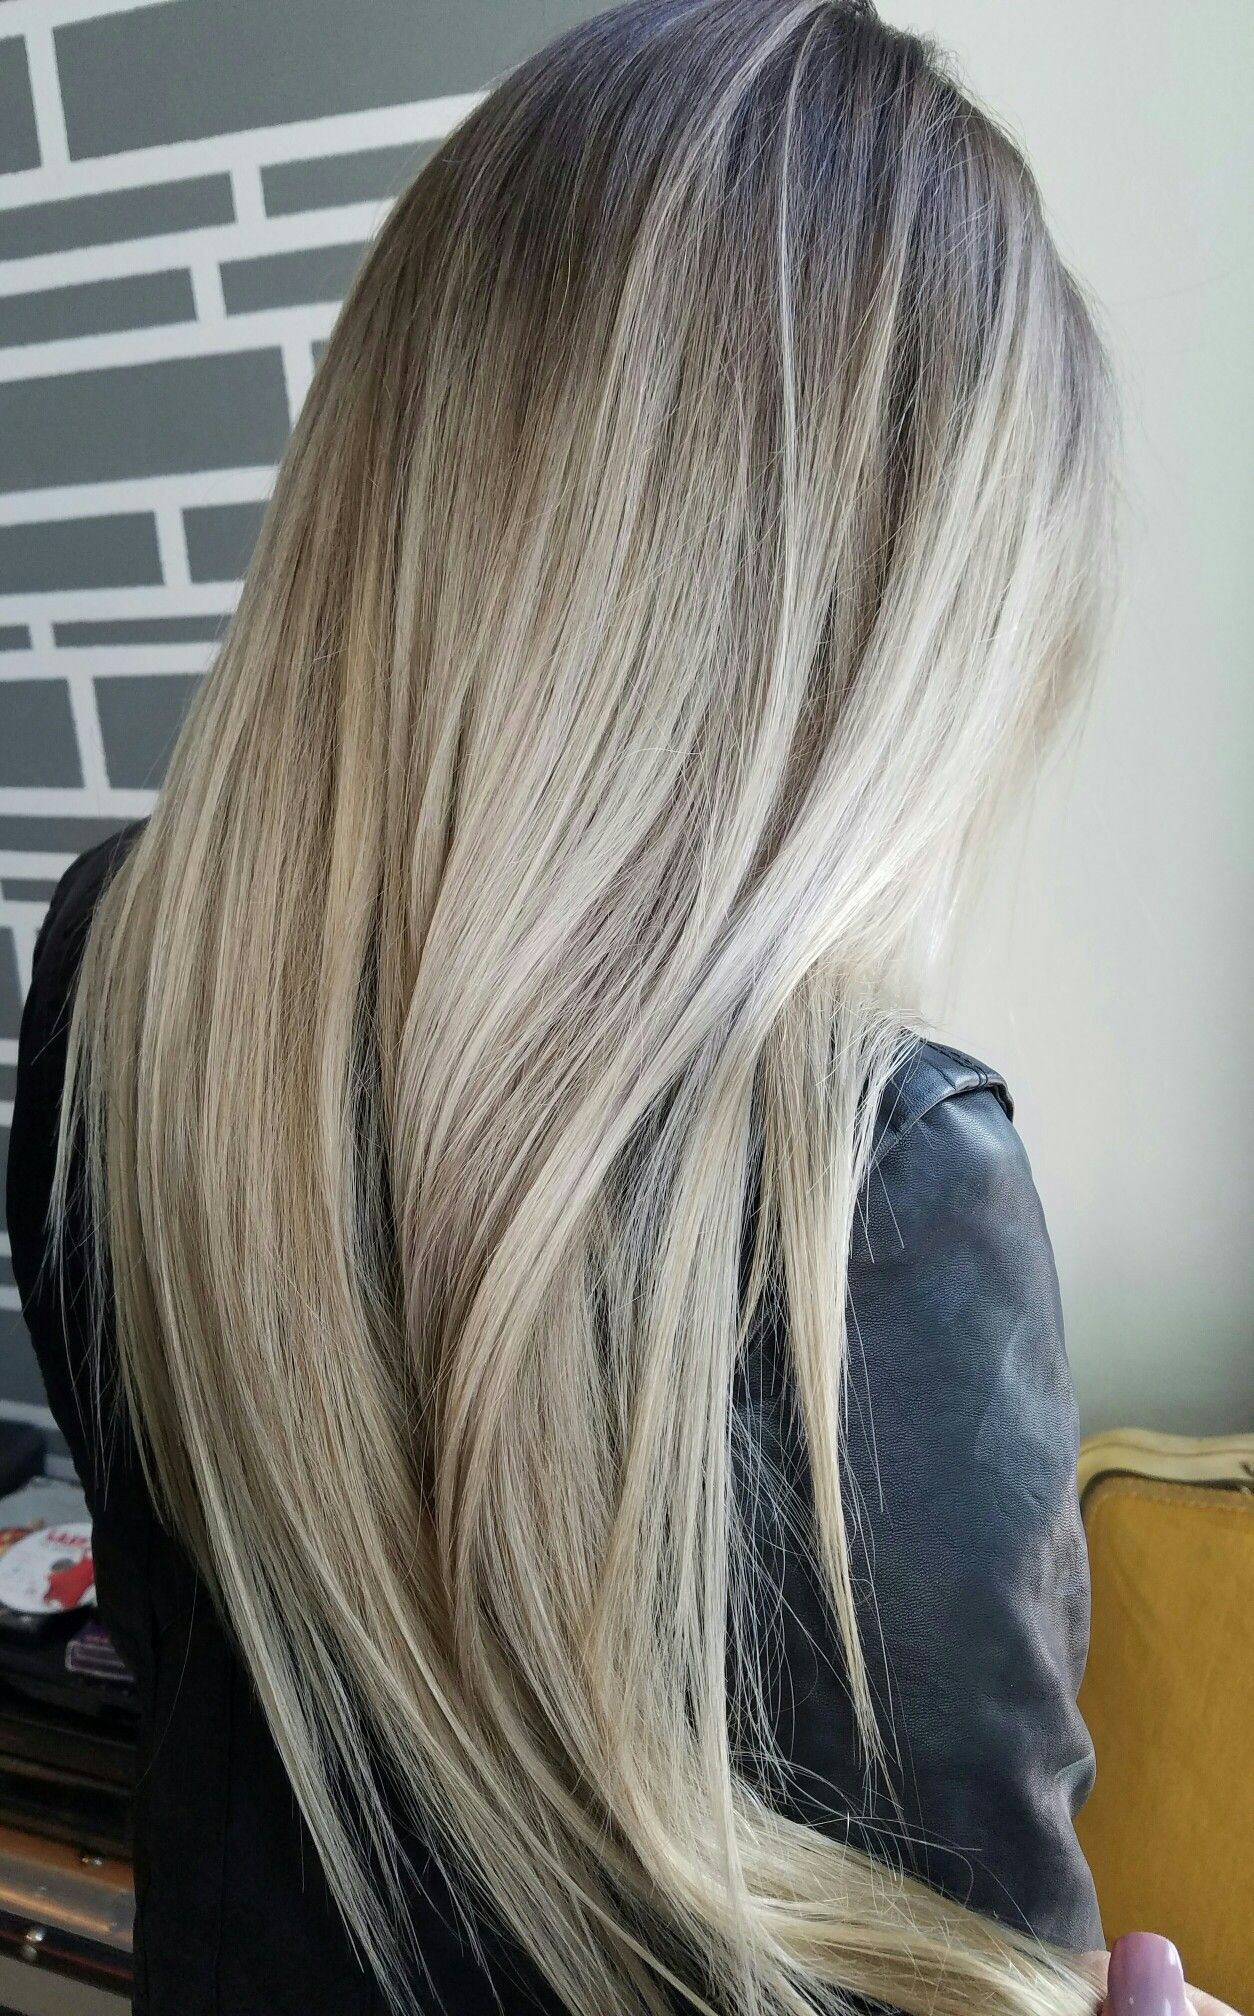 Coiffure Cheveux Mi Long Meche Blonde Rooty Blonde Blonde Balayage On Long Hair Cheveux